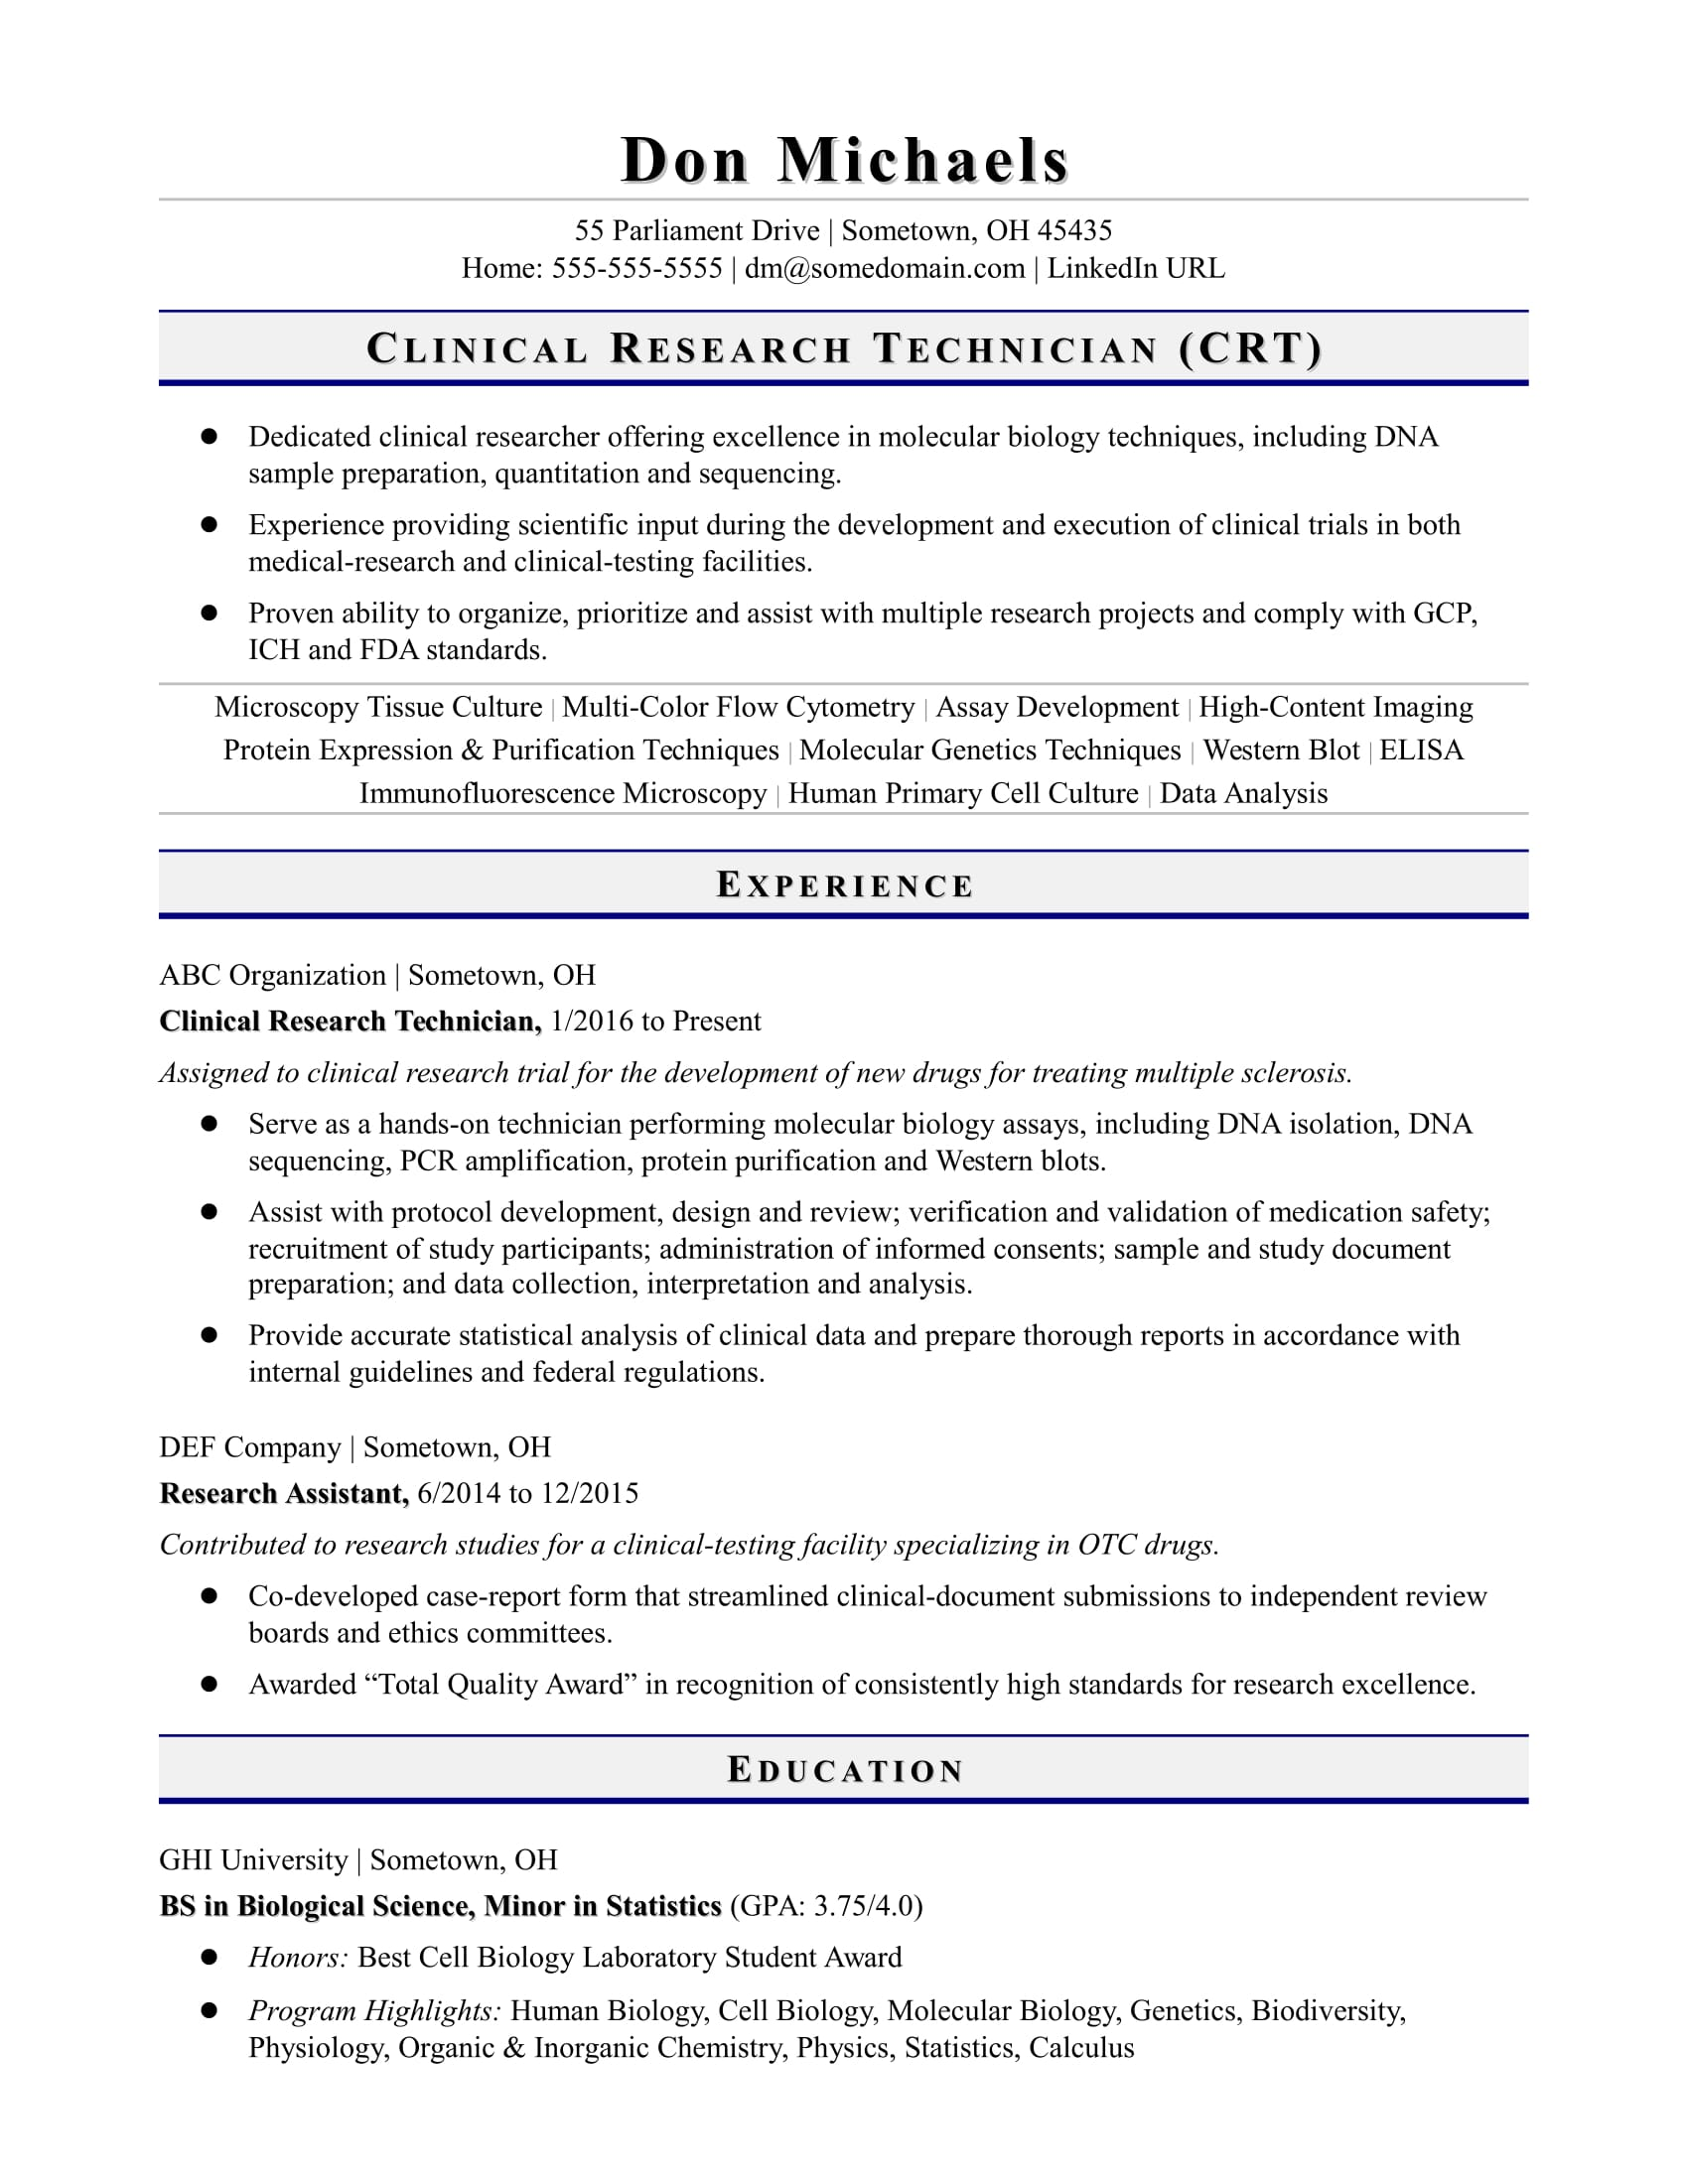 sample resume for an entry level research technician - Research Assistant Sample Resume